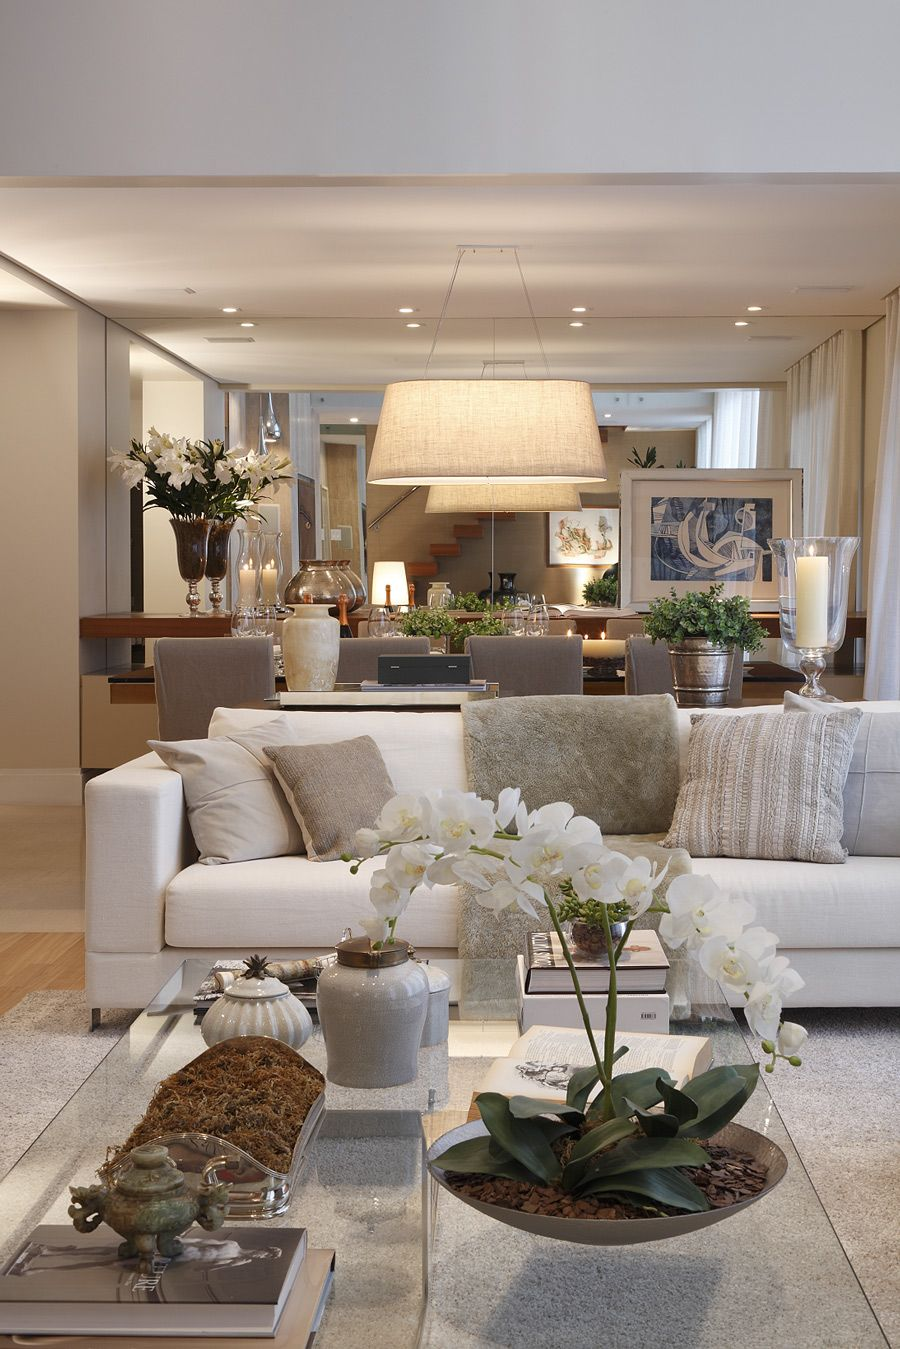 Contemporary Interior Design Decor In Neutral Whites LOVE THIS COULD MOVE IN RIGHT AWAY YEESSSS